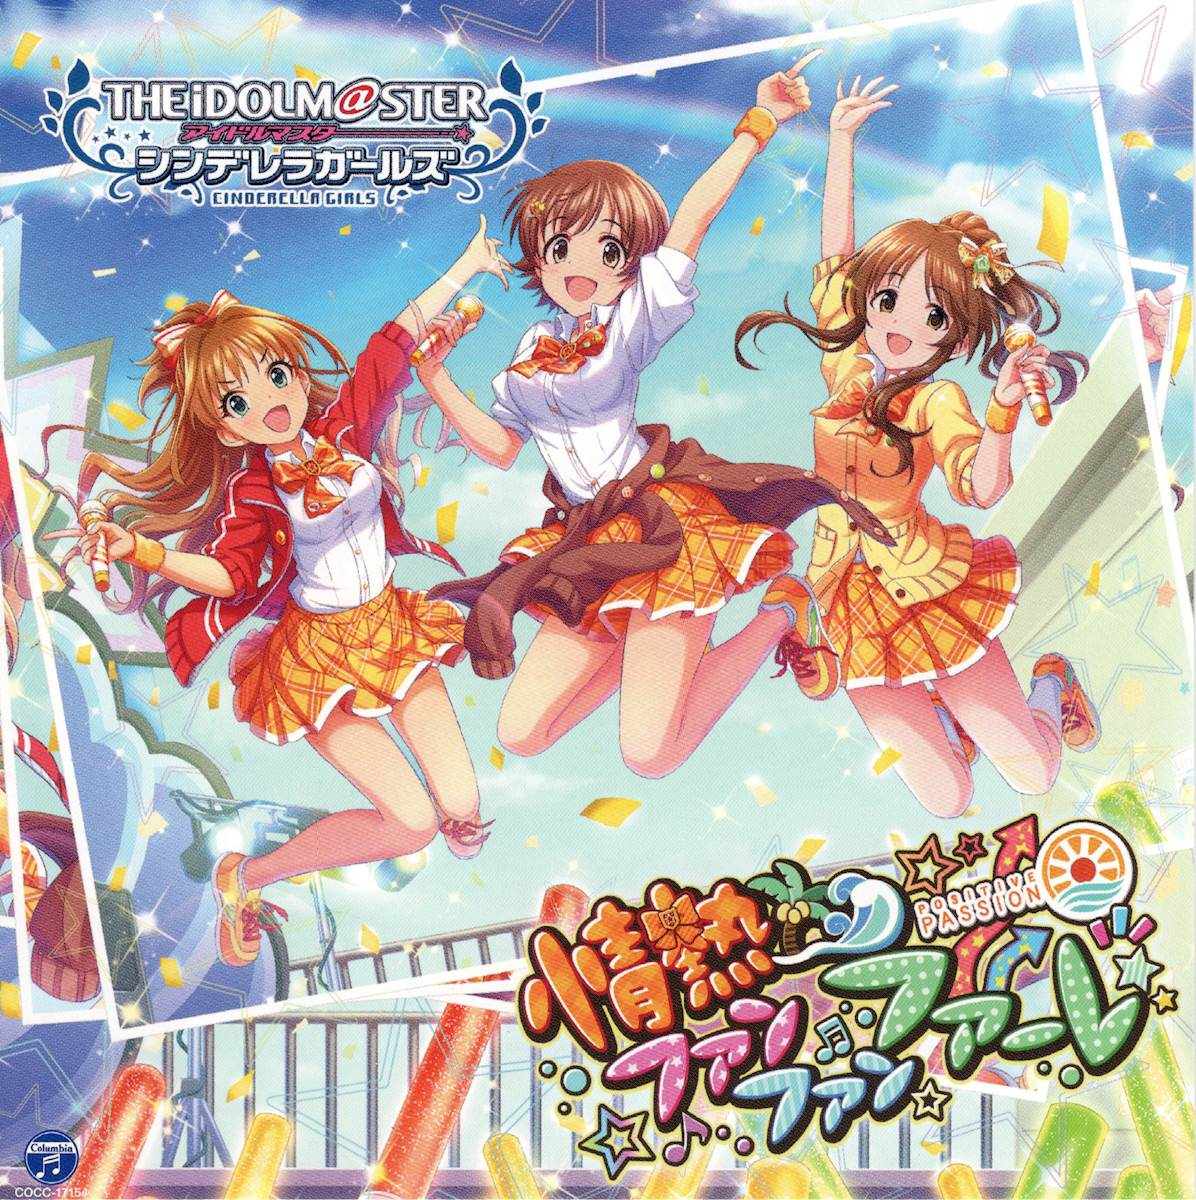 [自购][171108] THE IDOLM@STER CINDERELLA GIRLS SATRLIGHT MASTER 14 情熱ファンファンファーレ(320k+FLAC)